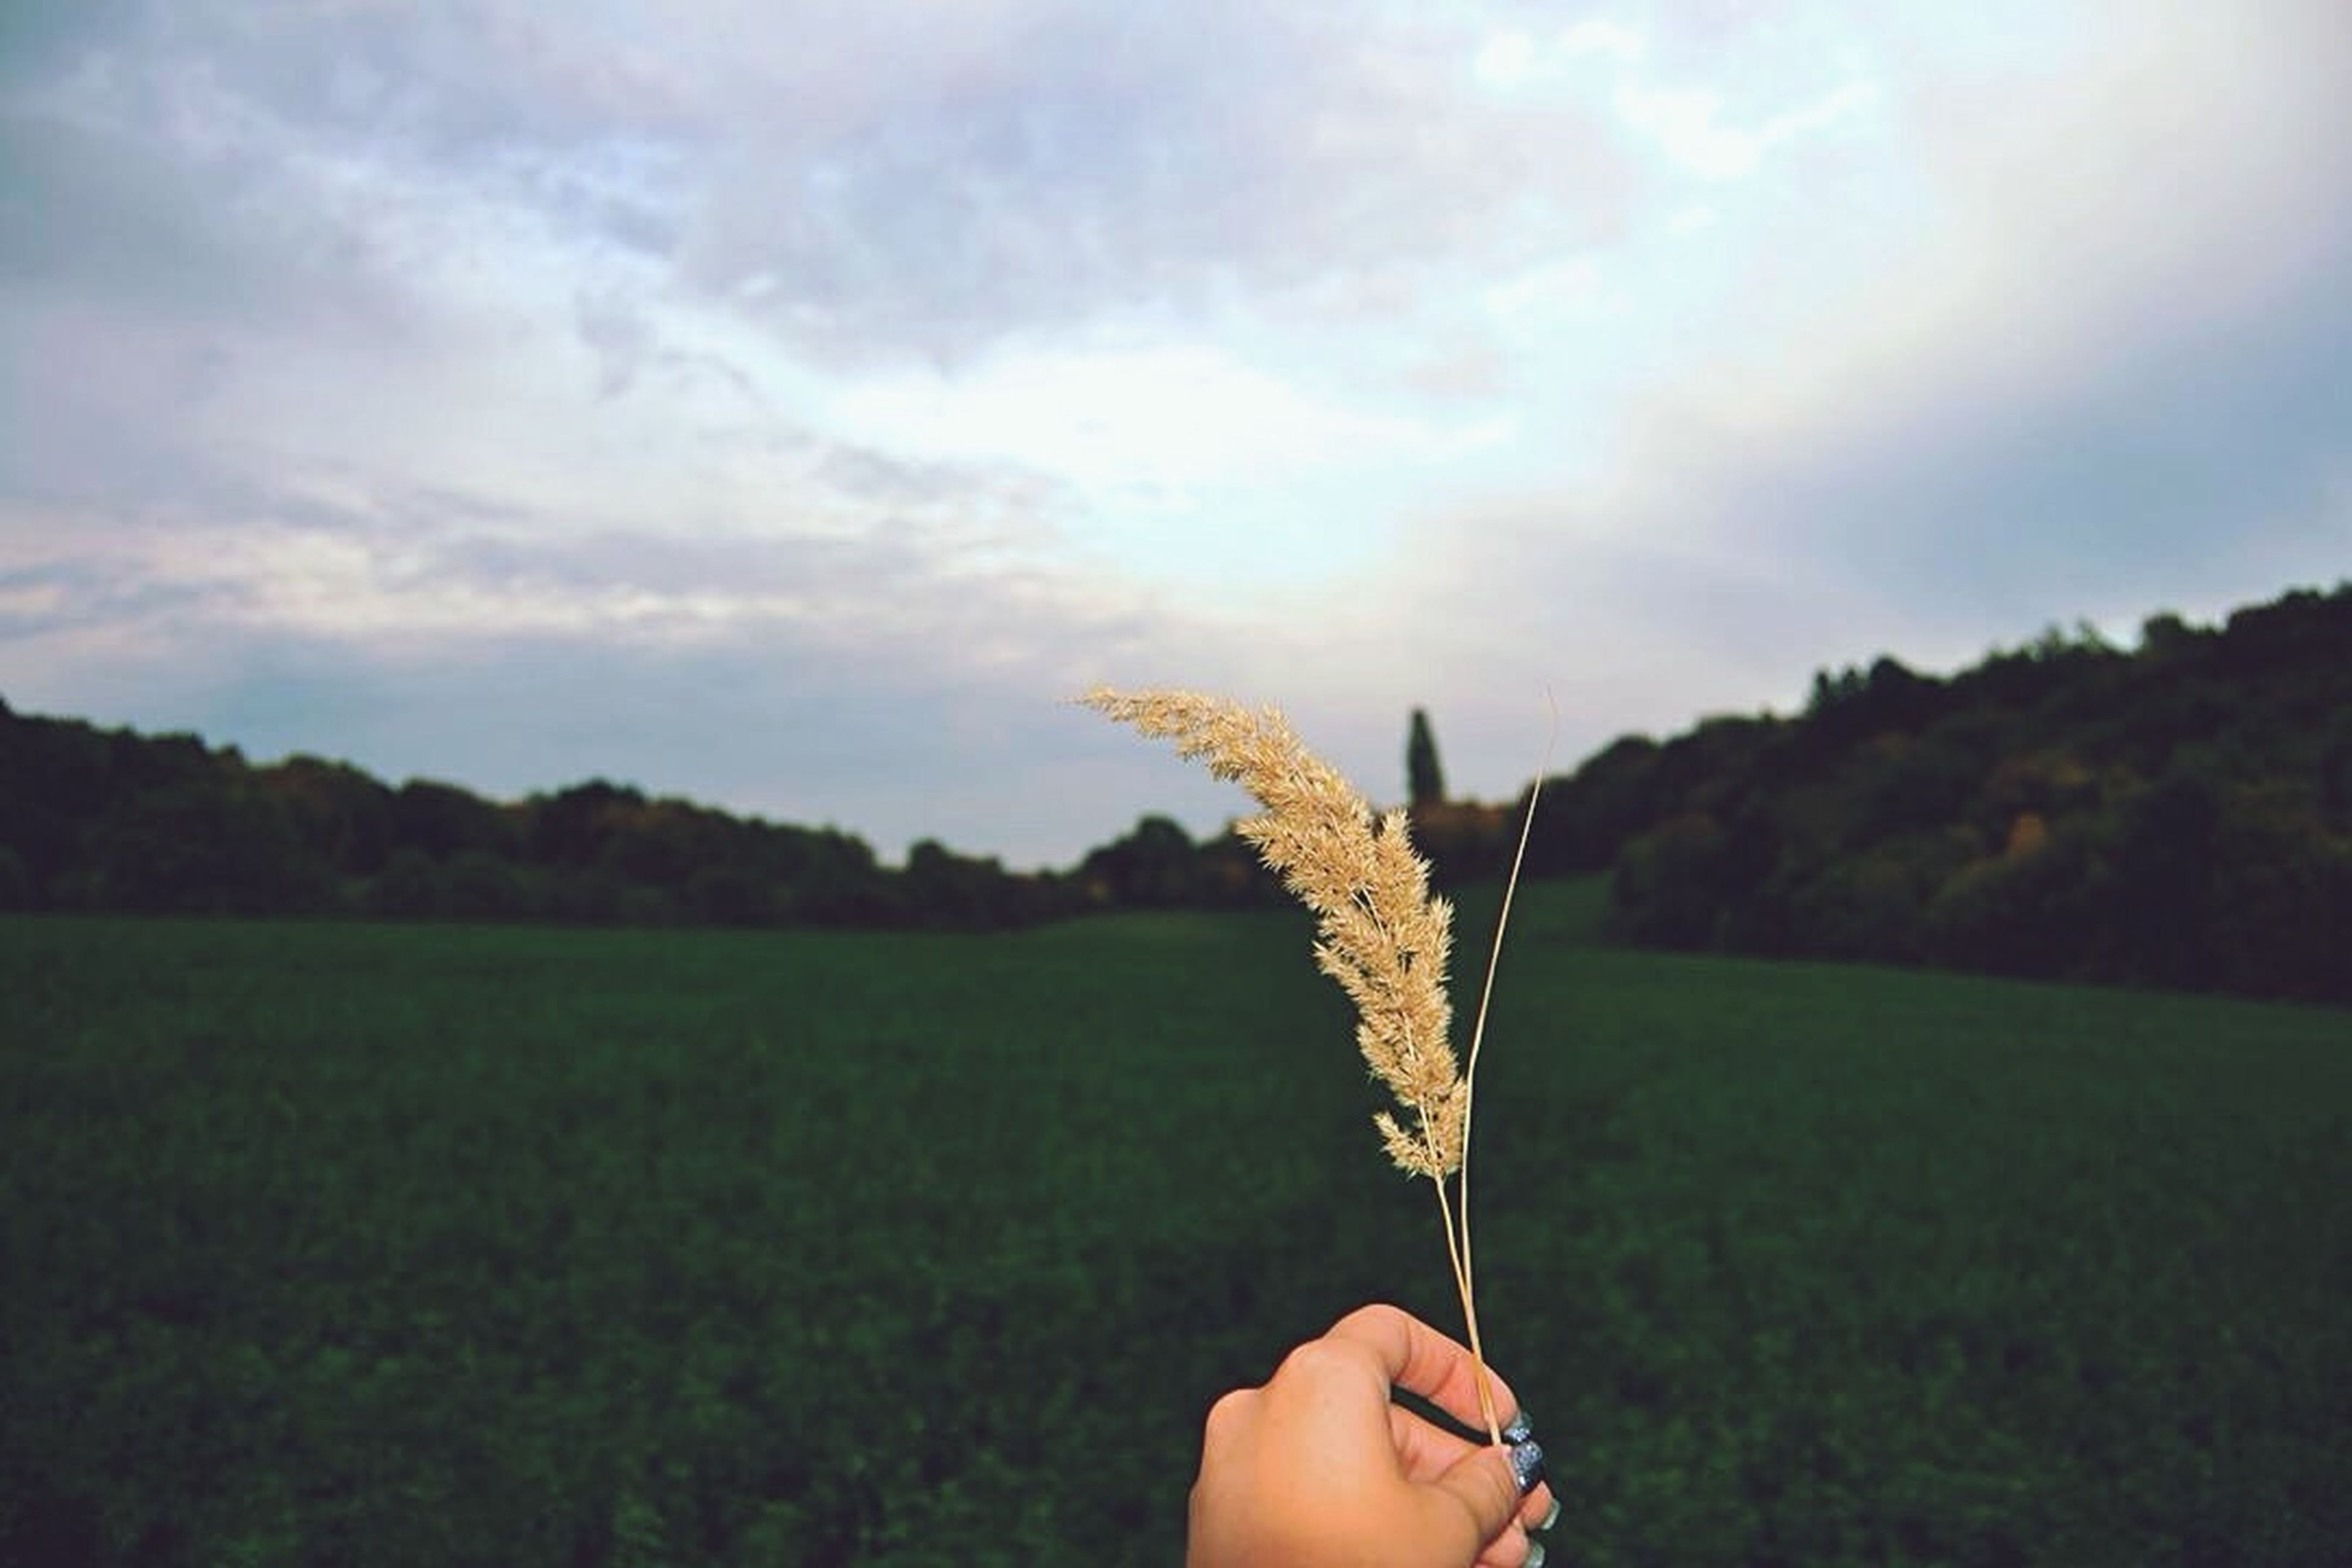 person, grass, holding, field, one animal, part of, sky, tree, animal themes, cropped, human finger, unrecognizable person, nature, grassy, lifestyles, landscape, green color